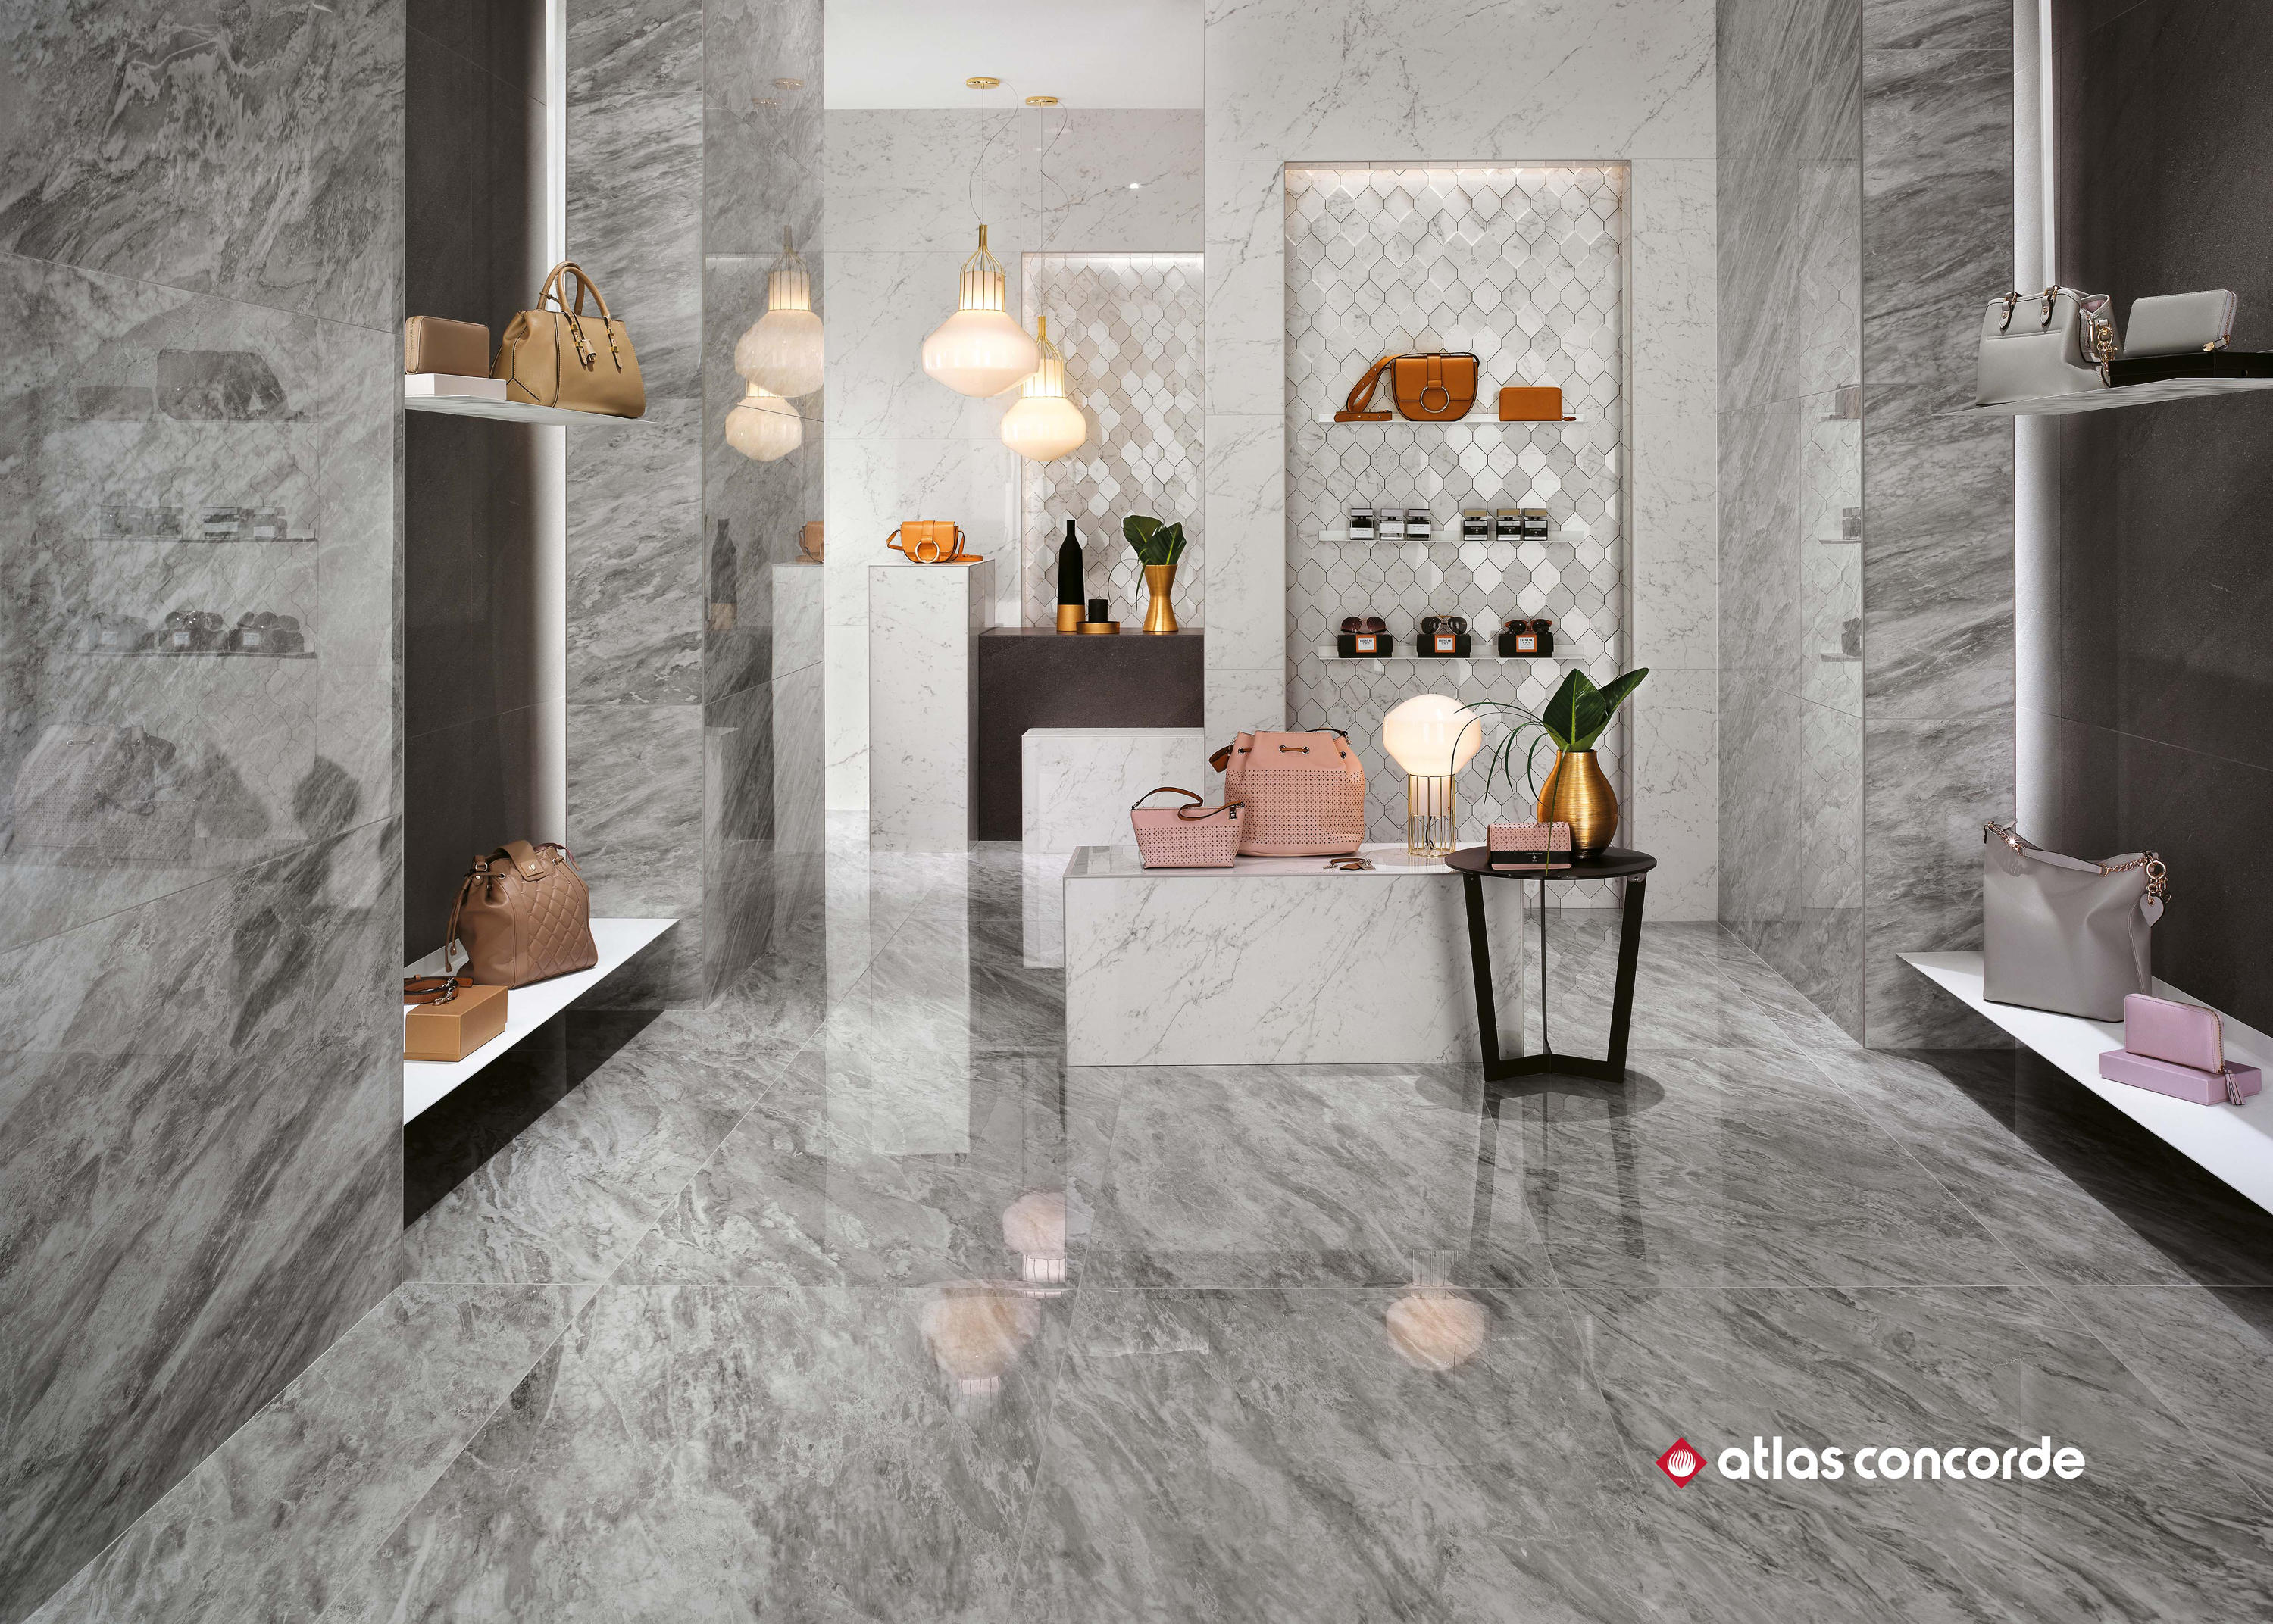 marvel stone bardiglio esagono ceramic tiles from atlas